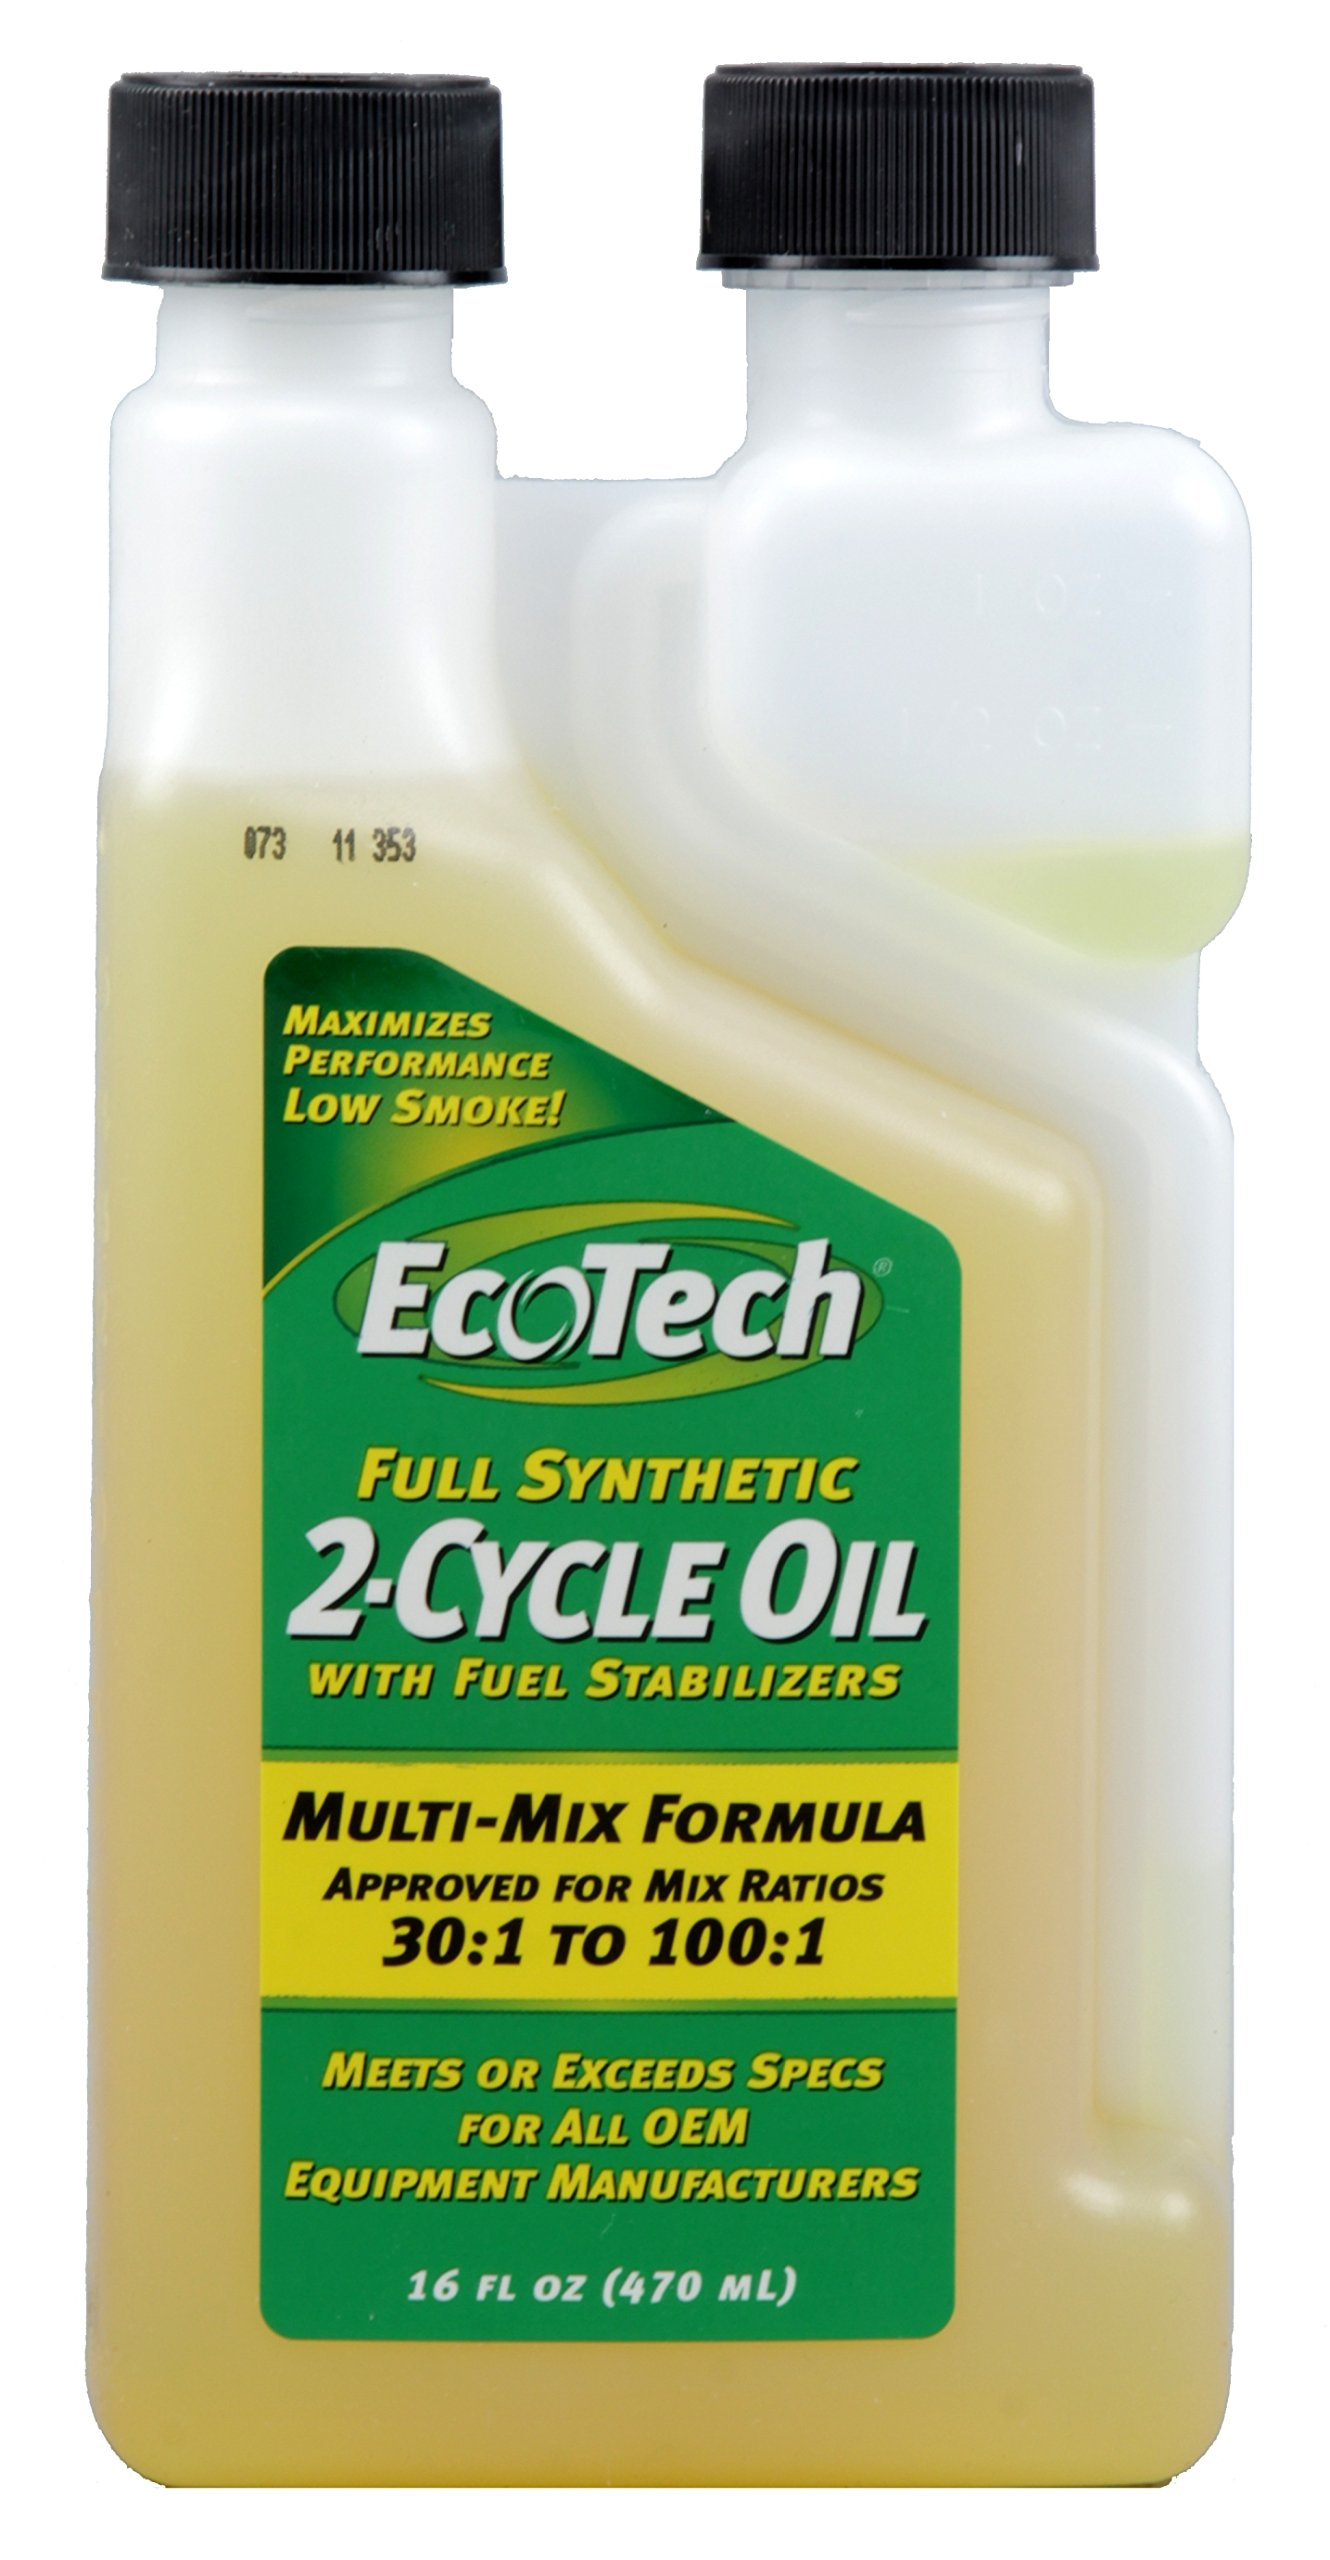 EcoTech Full Synthetic 2-Cycle Oil, 16-Ounce by EcoTech